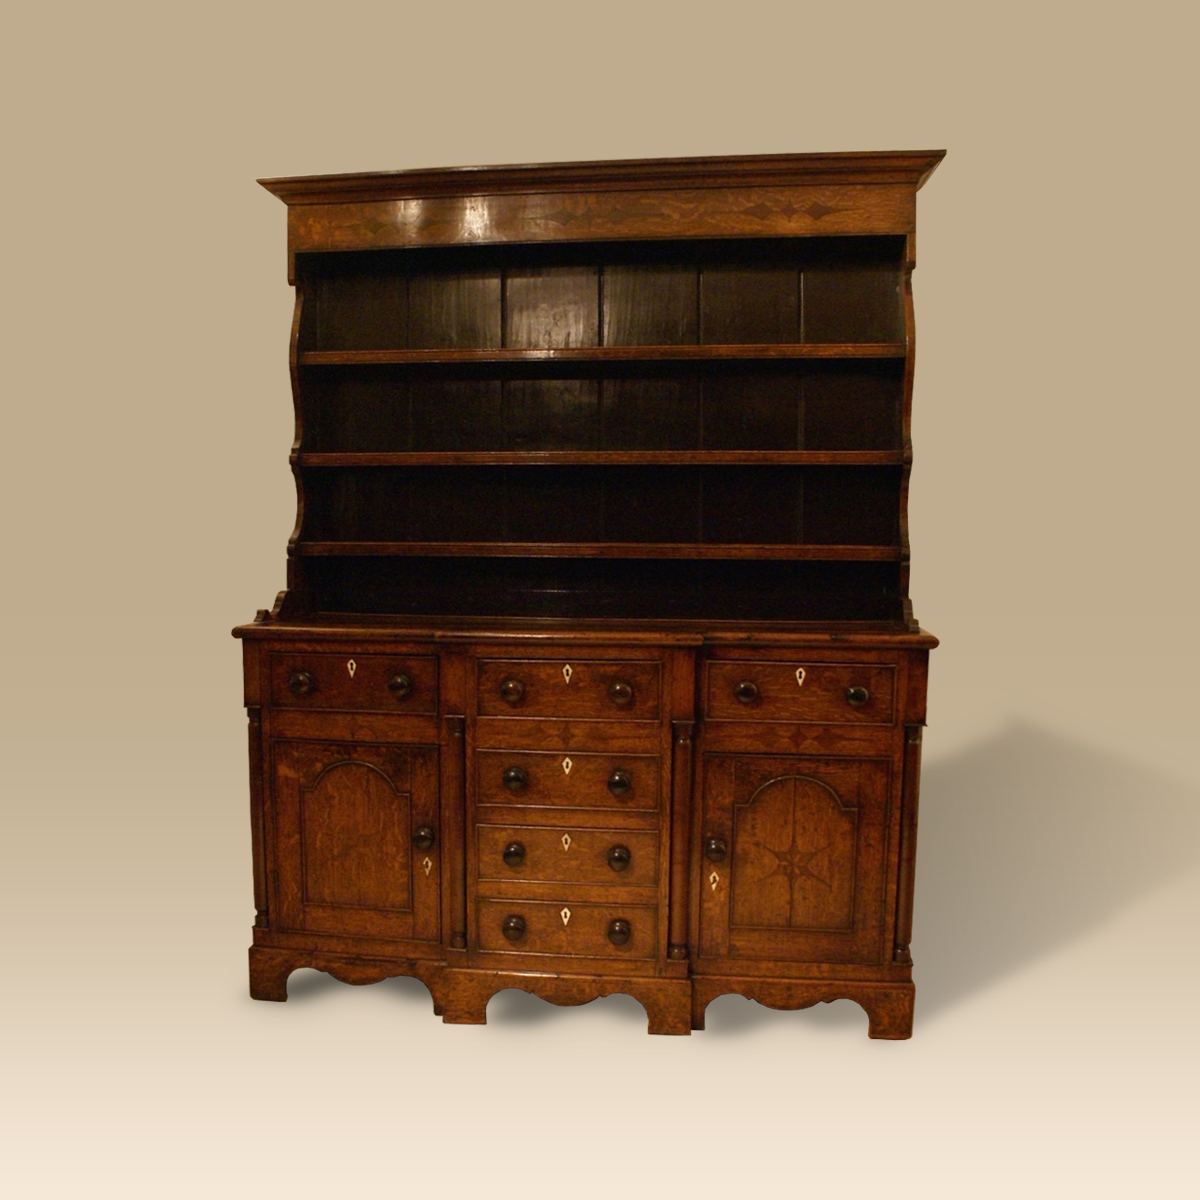 An Early 19th Century Oak Dresser